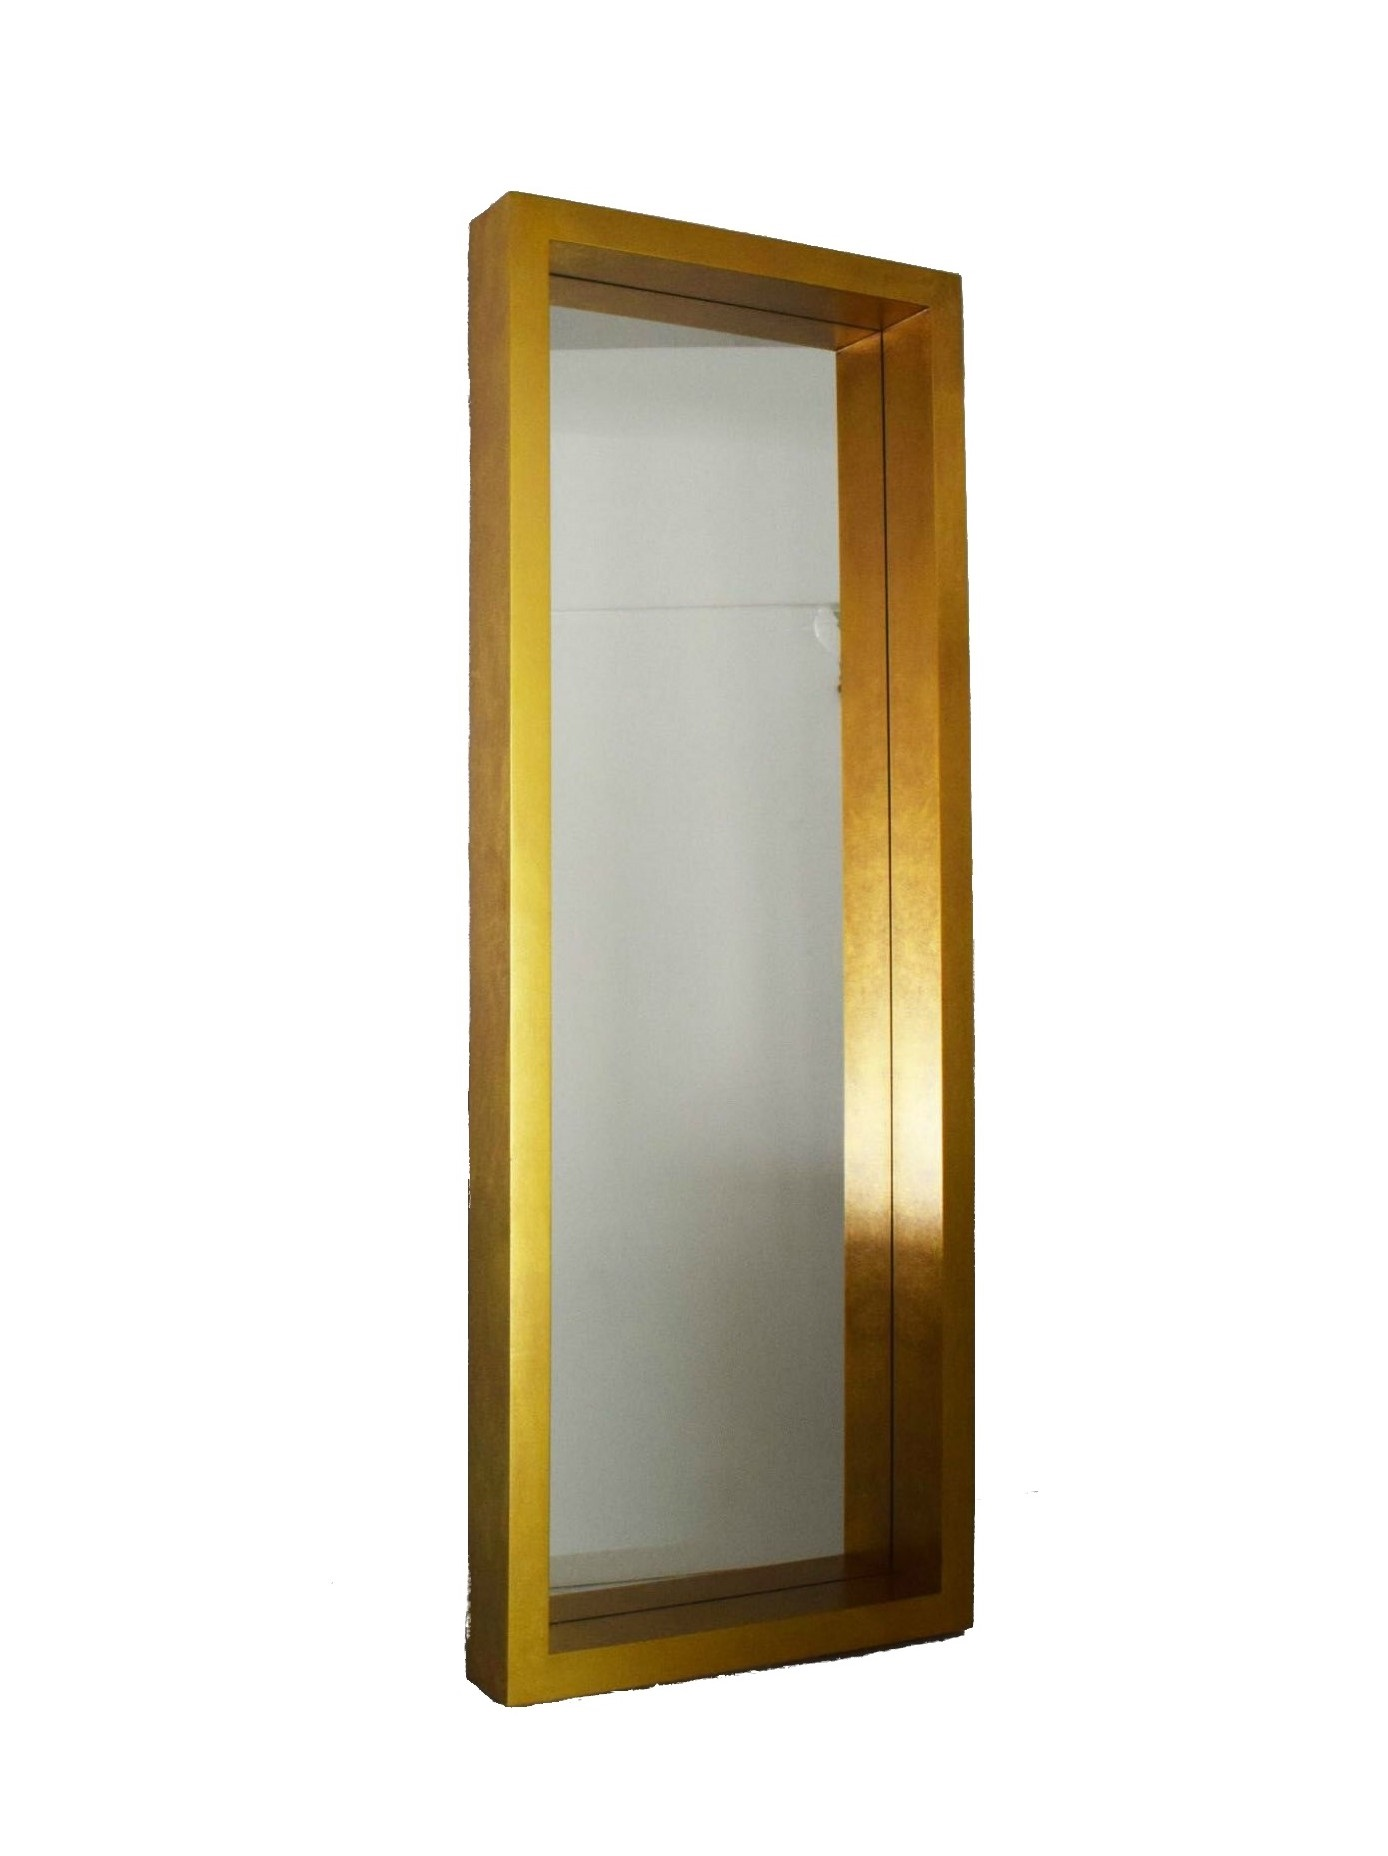 Gold floor mirror plata import for Gold standing mirror